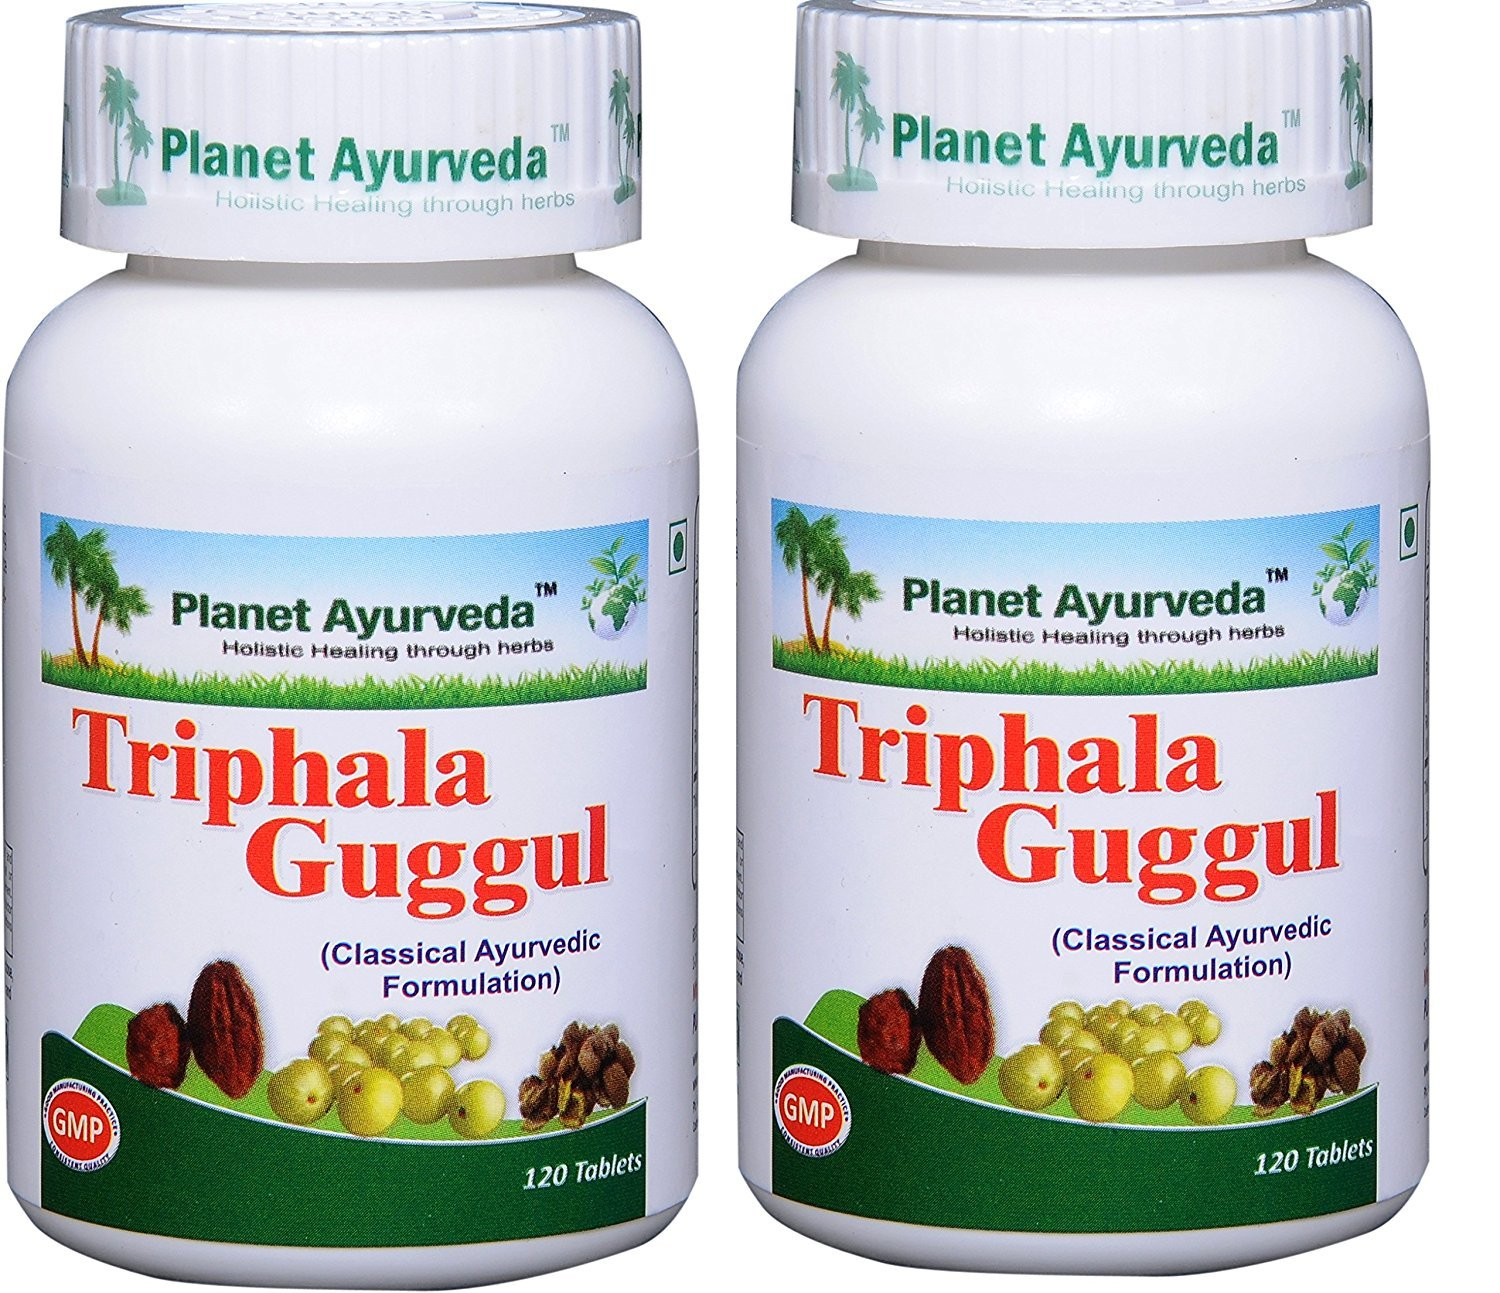 Triphala Guggul - 2 bottles (each 120 tablets, 500mg) - Planet Ayurveda - US seller